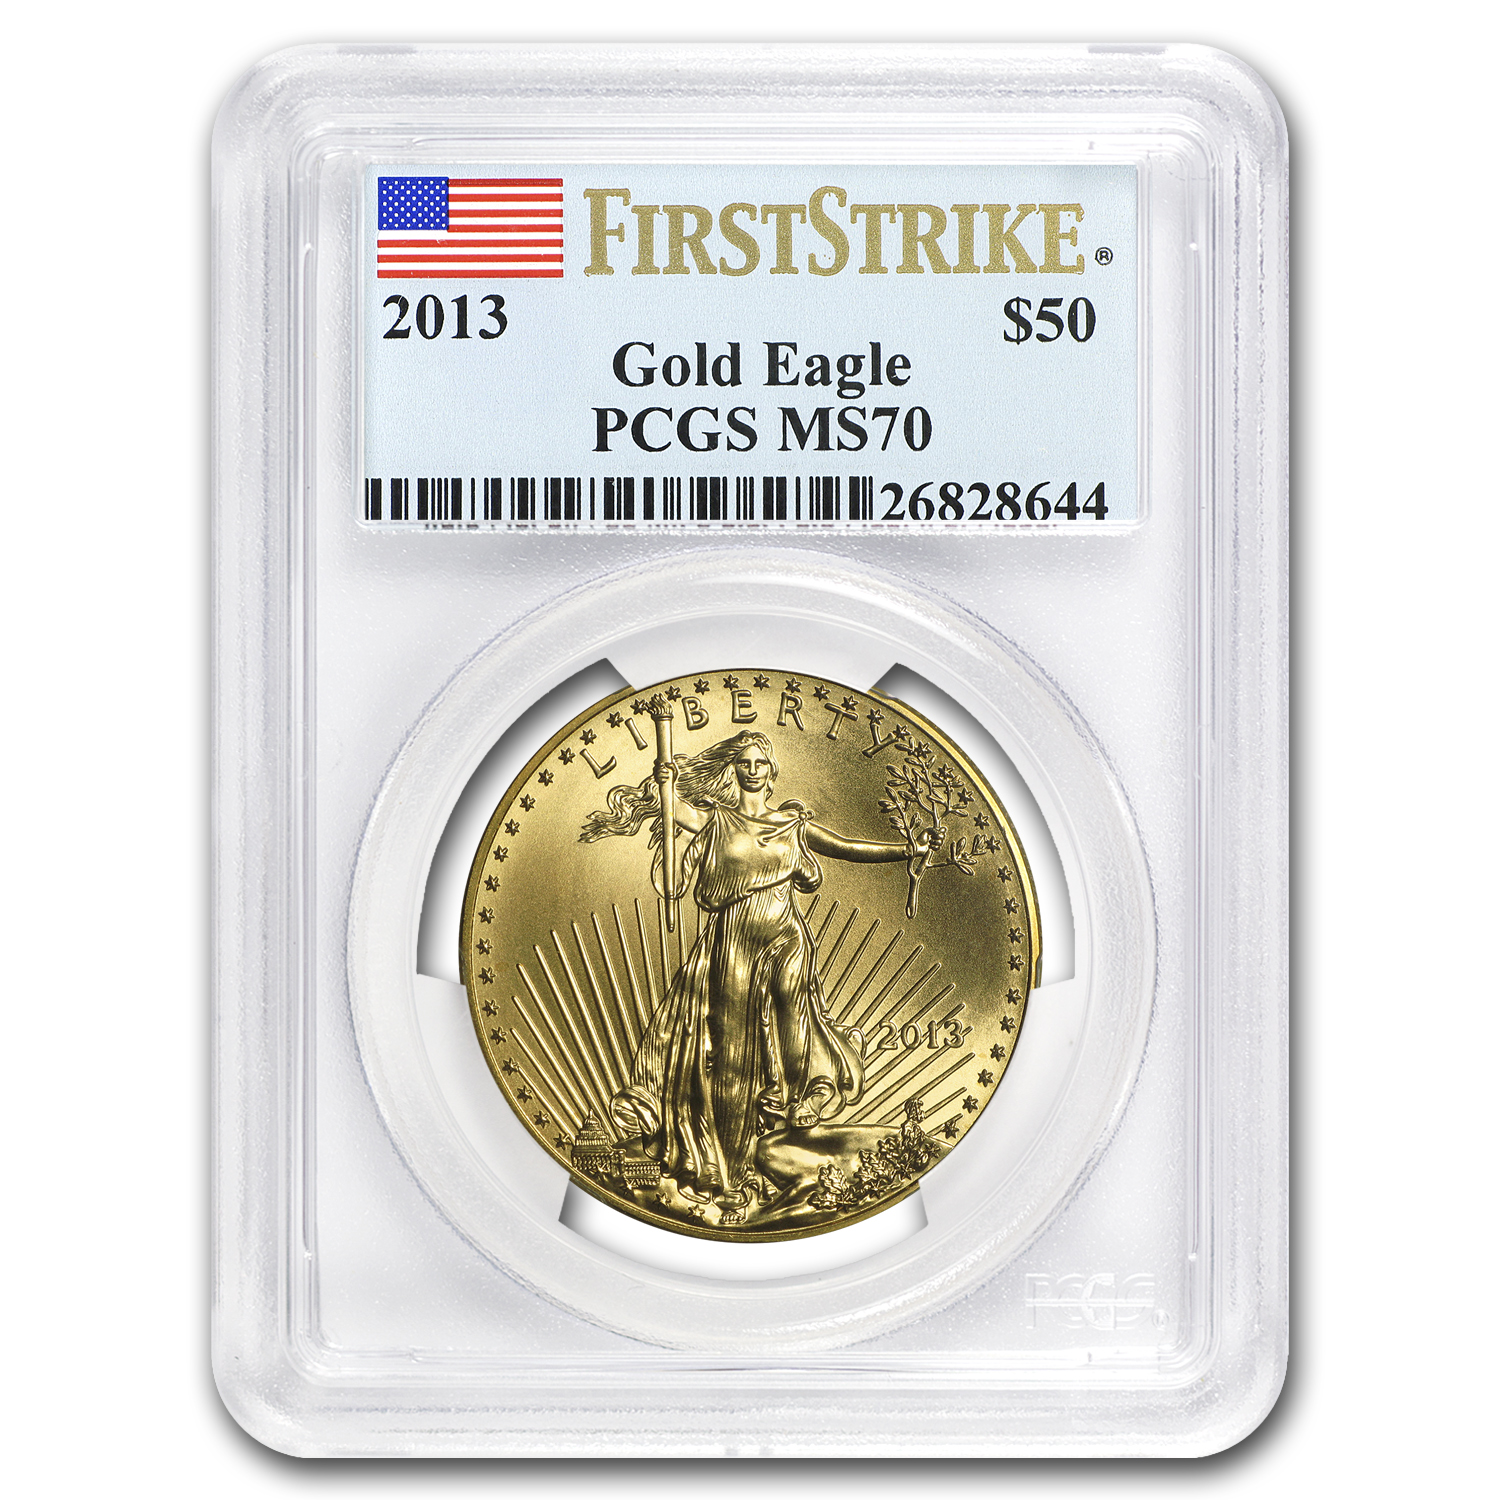 2013 1 oz Gold American Eagle MS-70 PCGS (FS)